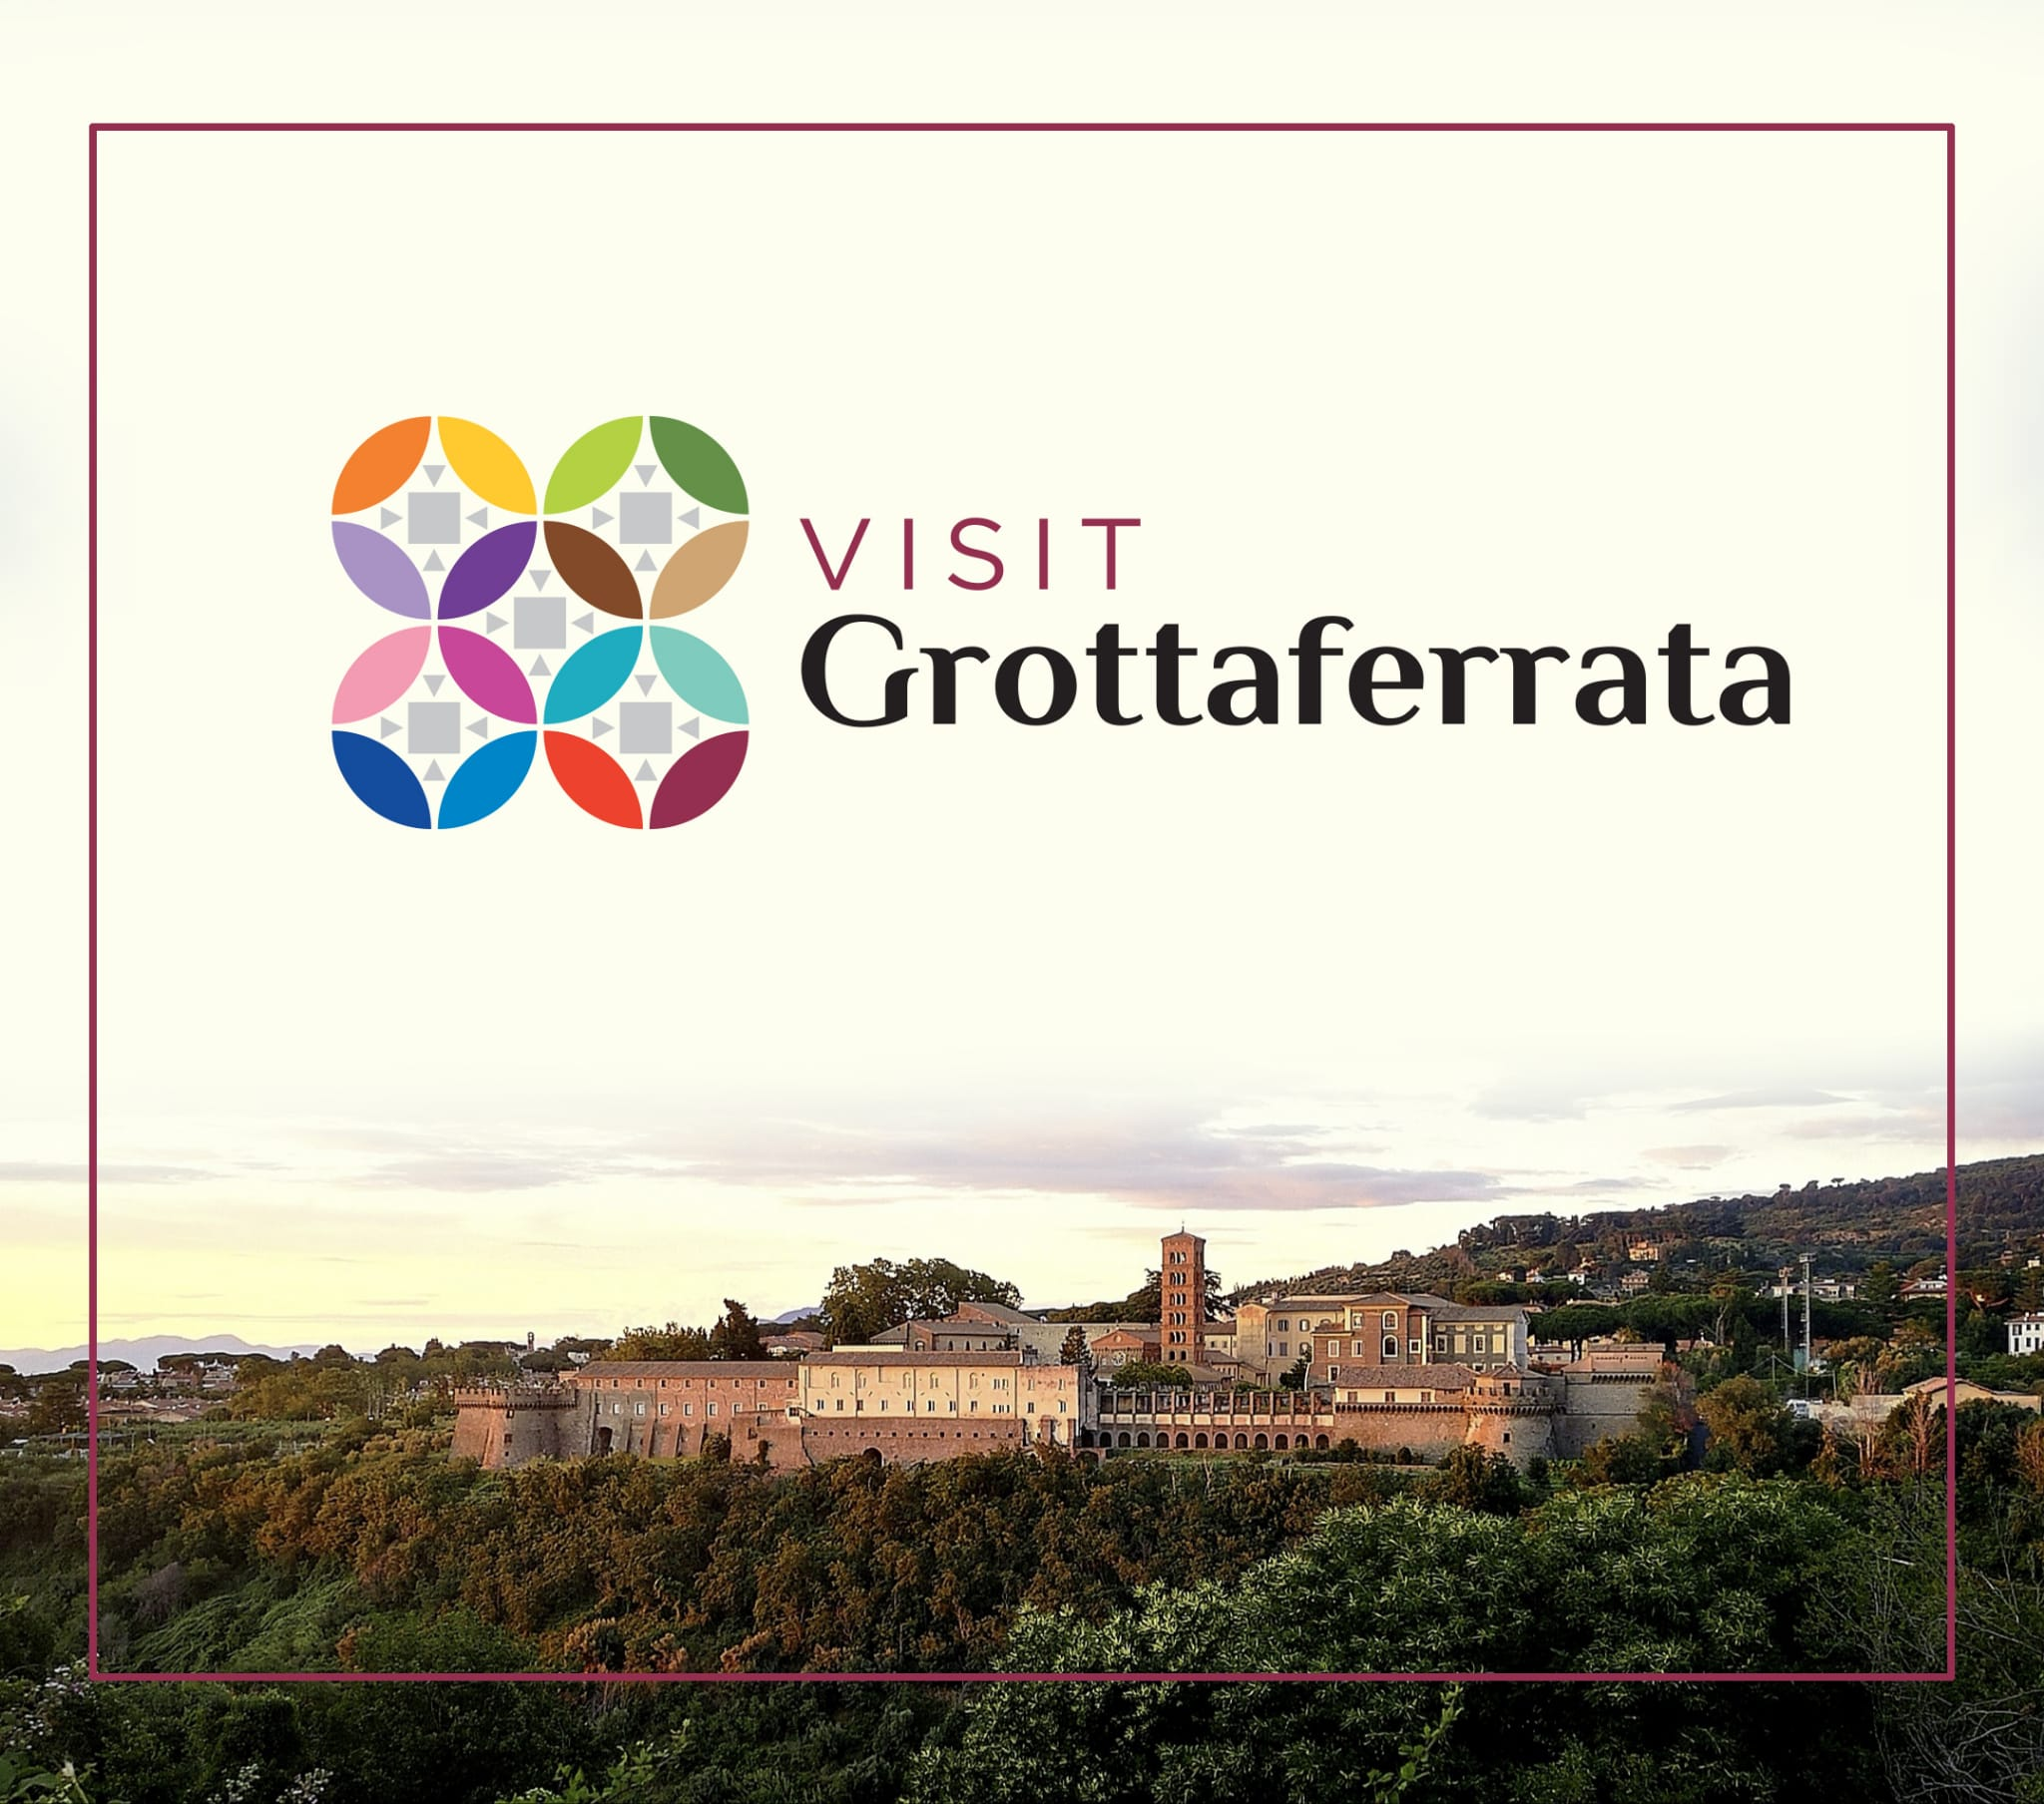 VisitGrottaferrata